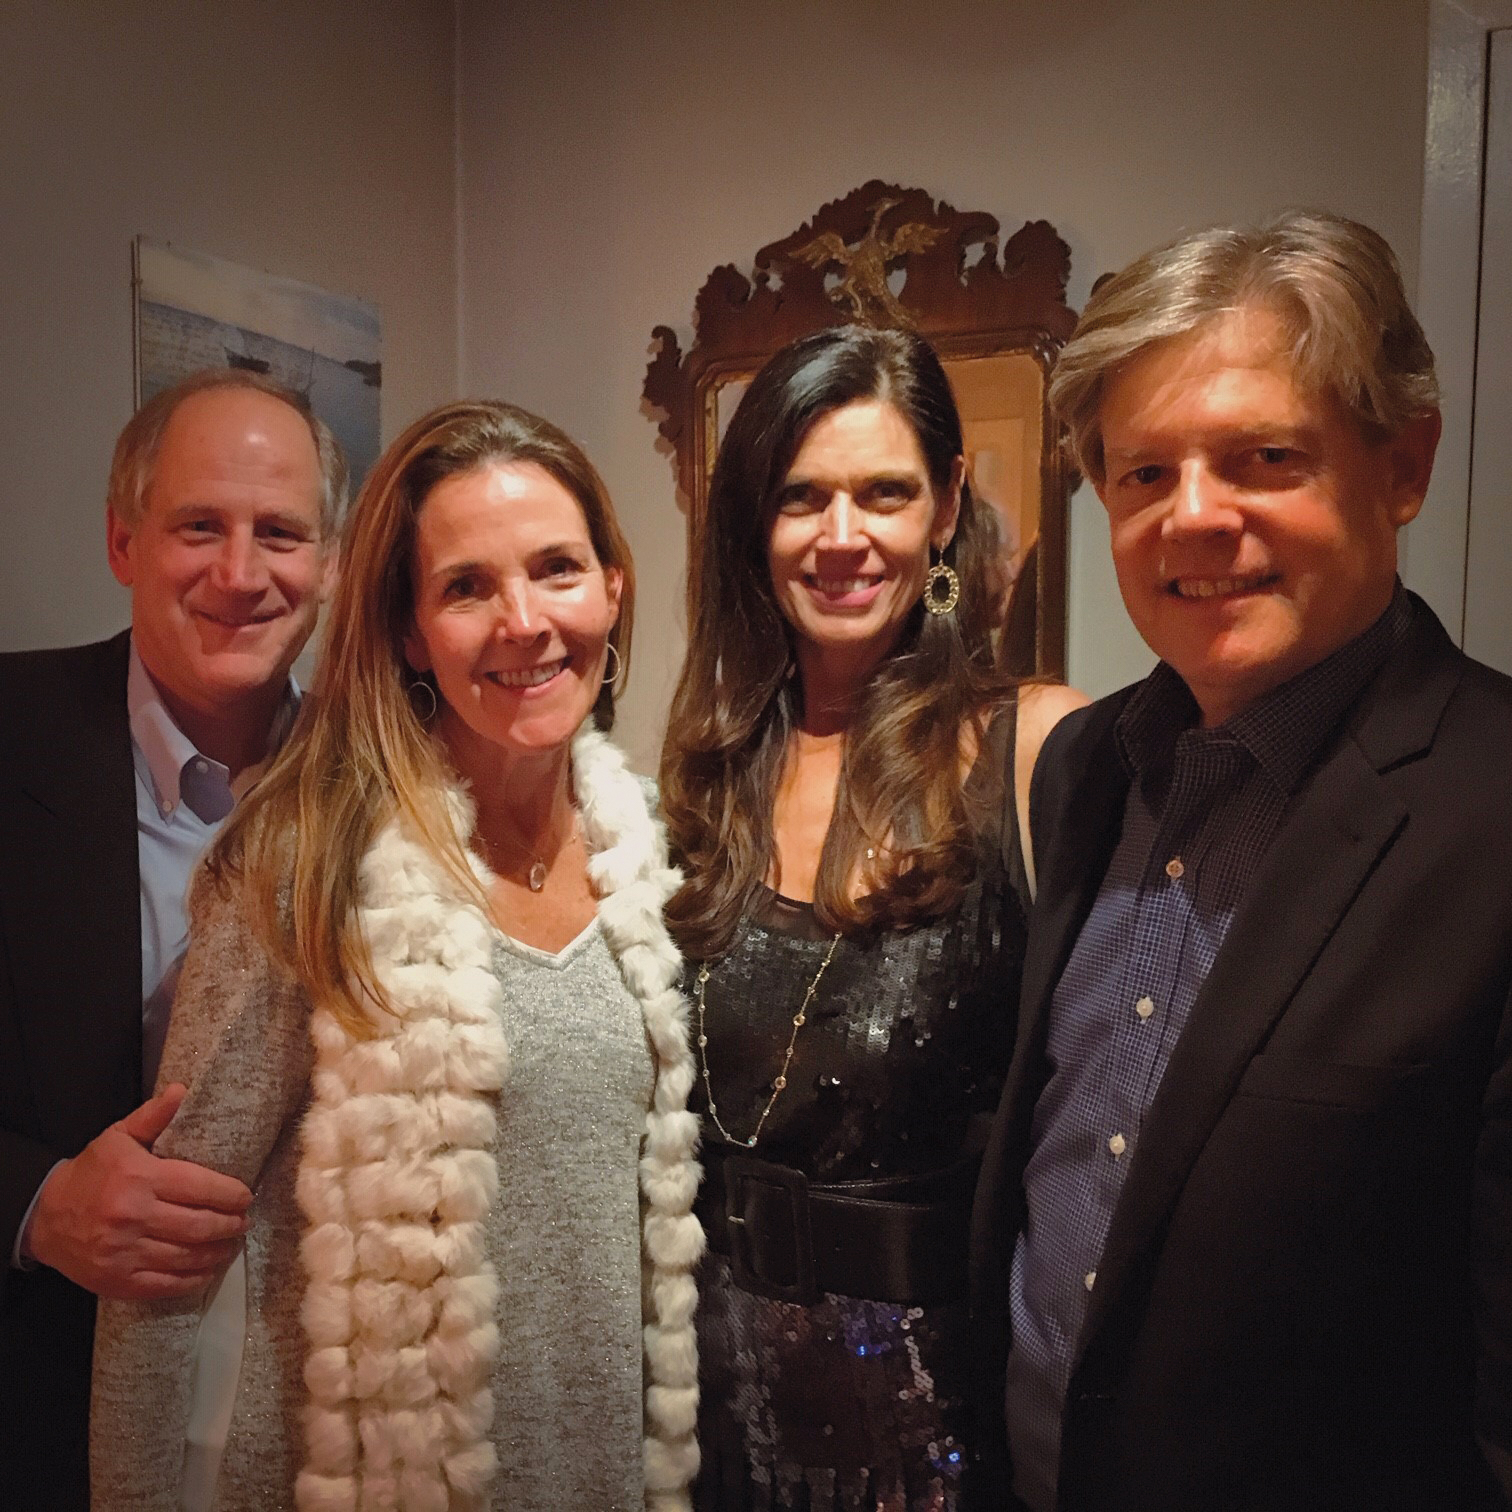 Jon '78 and Tiffany Sweet enjoying an evening out with Melissa and Thor Thors '78.